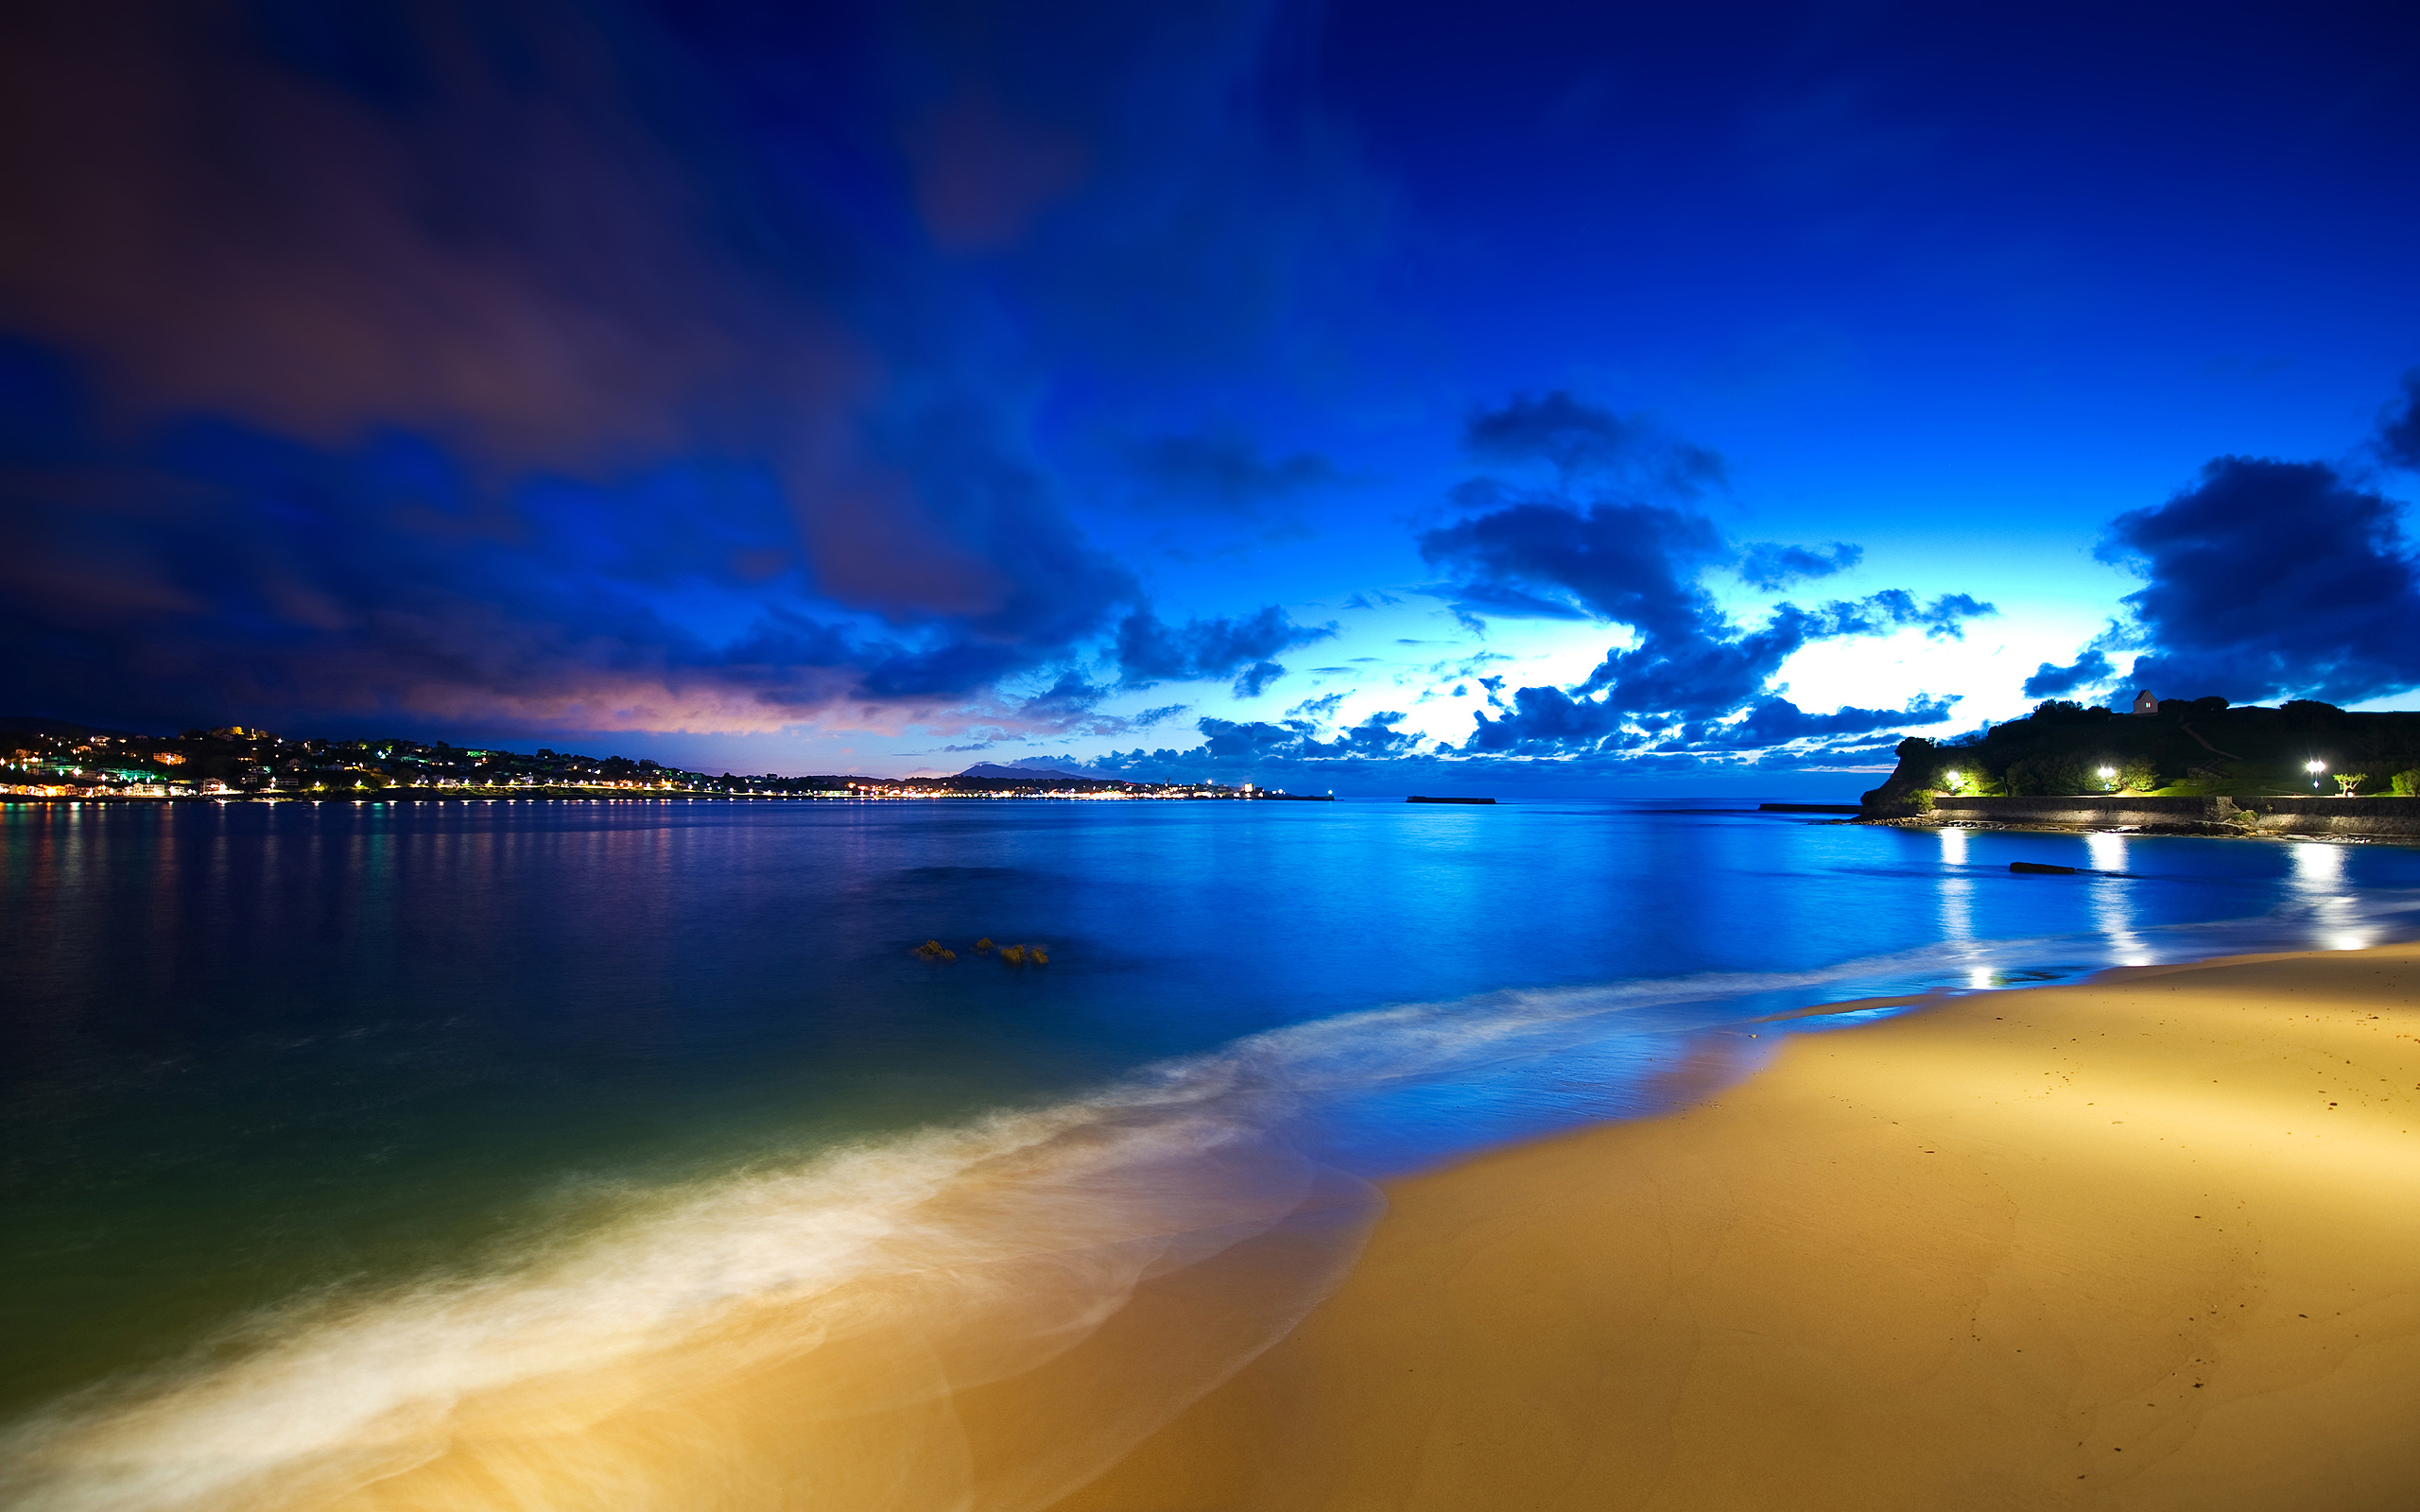 Ocean Beach At Night HD Wallpaper 2560x1600